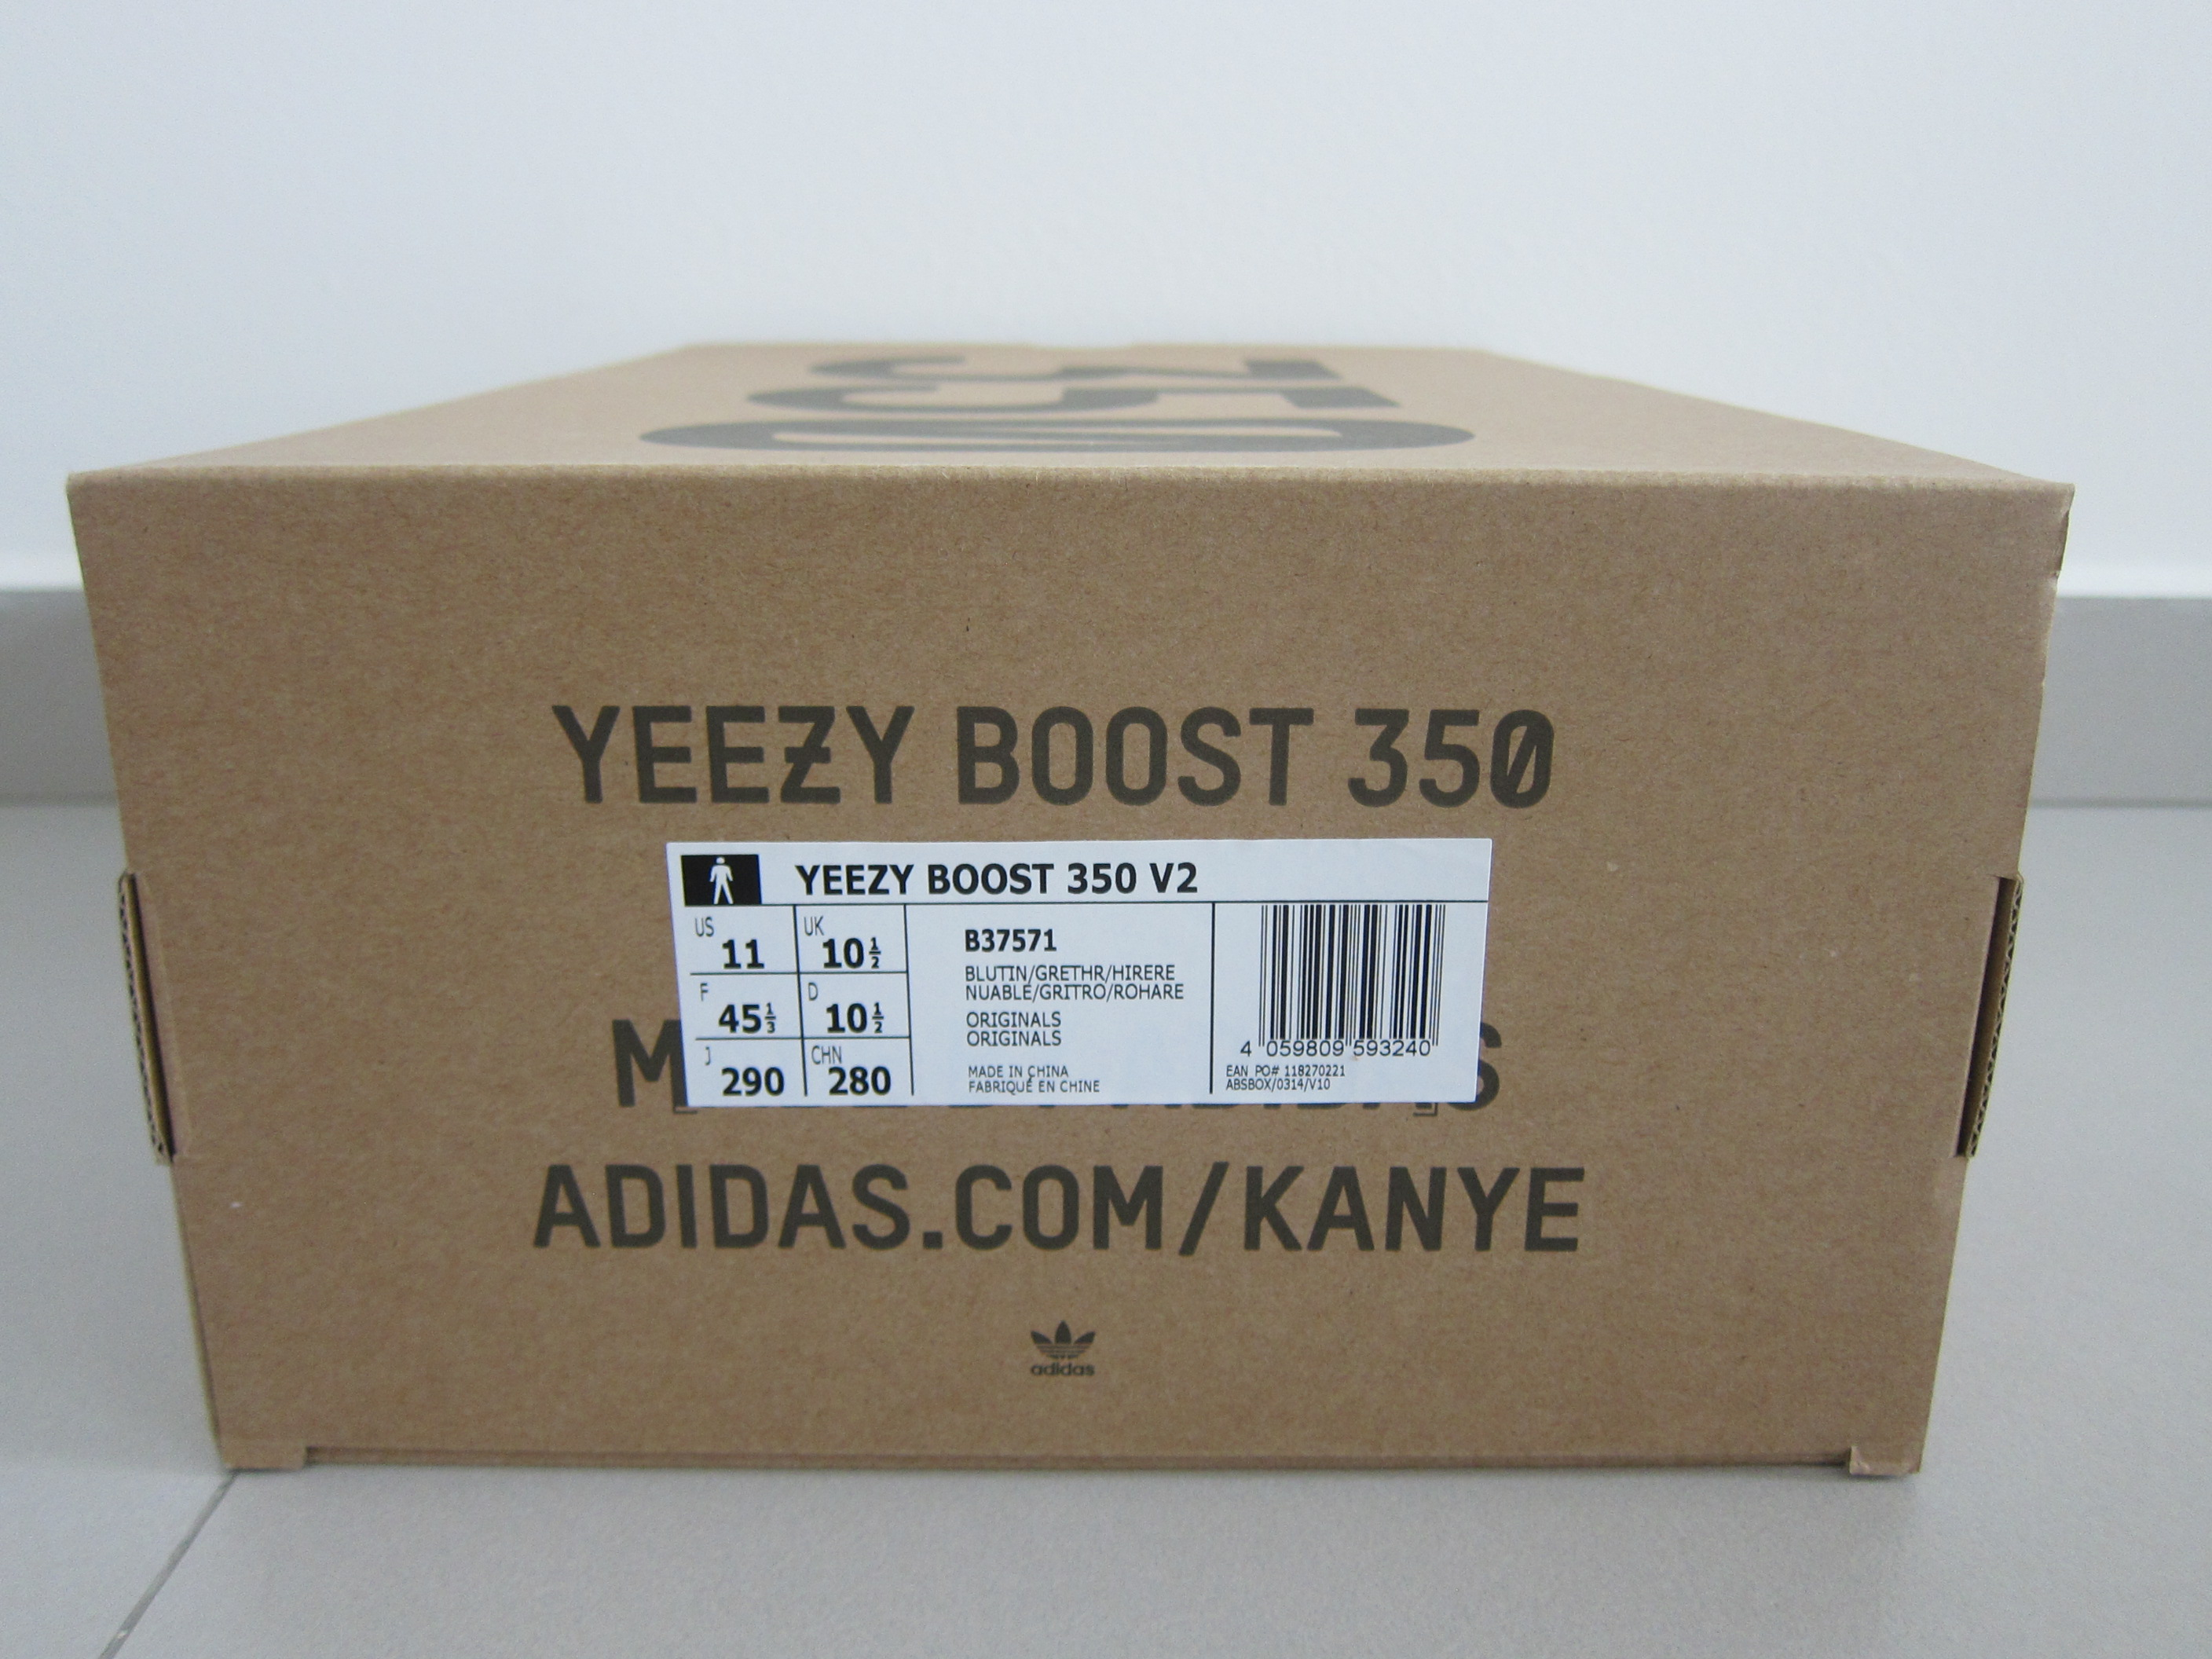 box of adidas yeezy